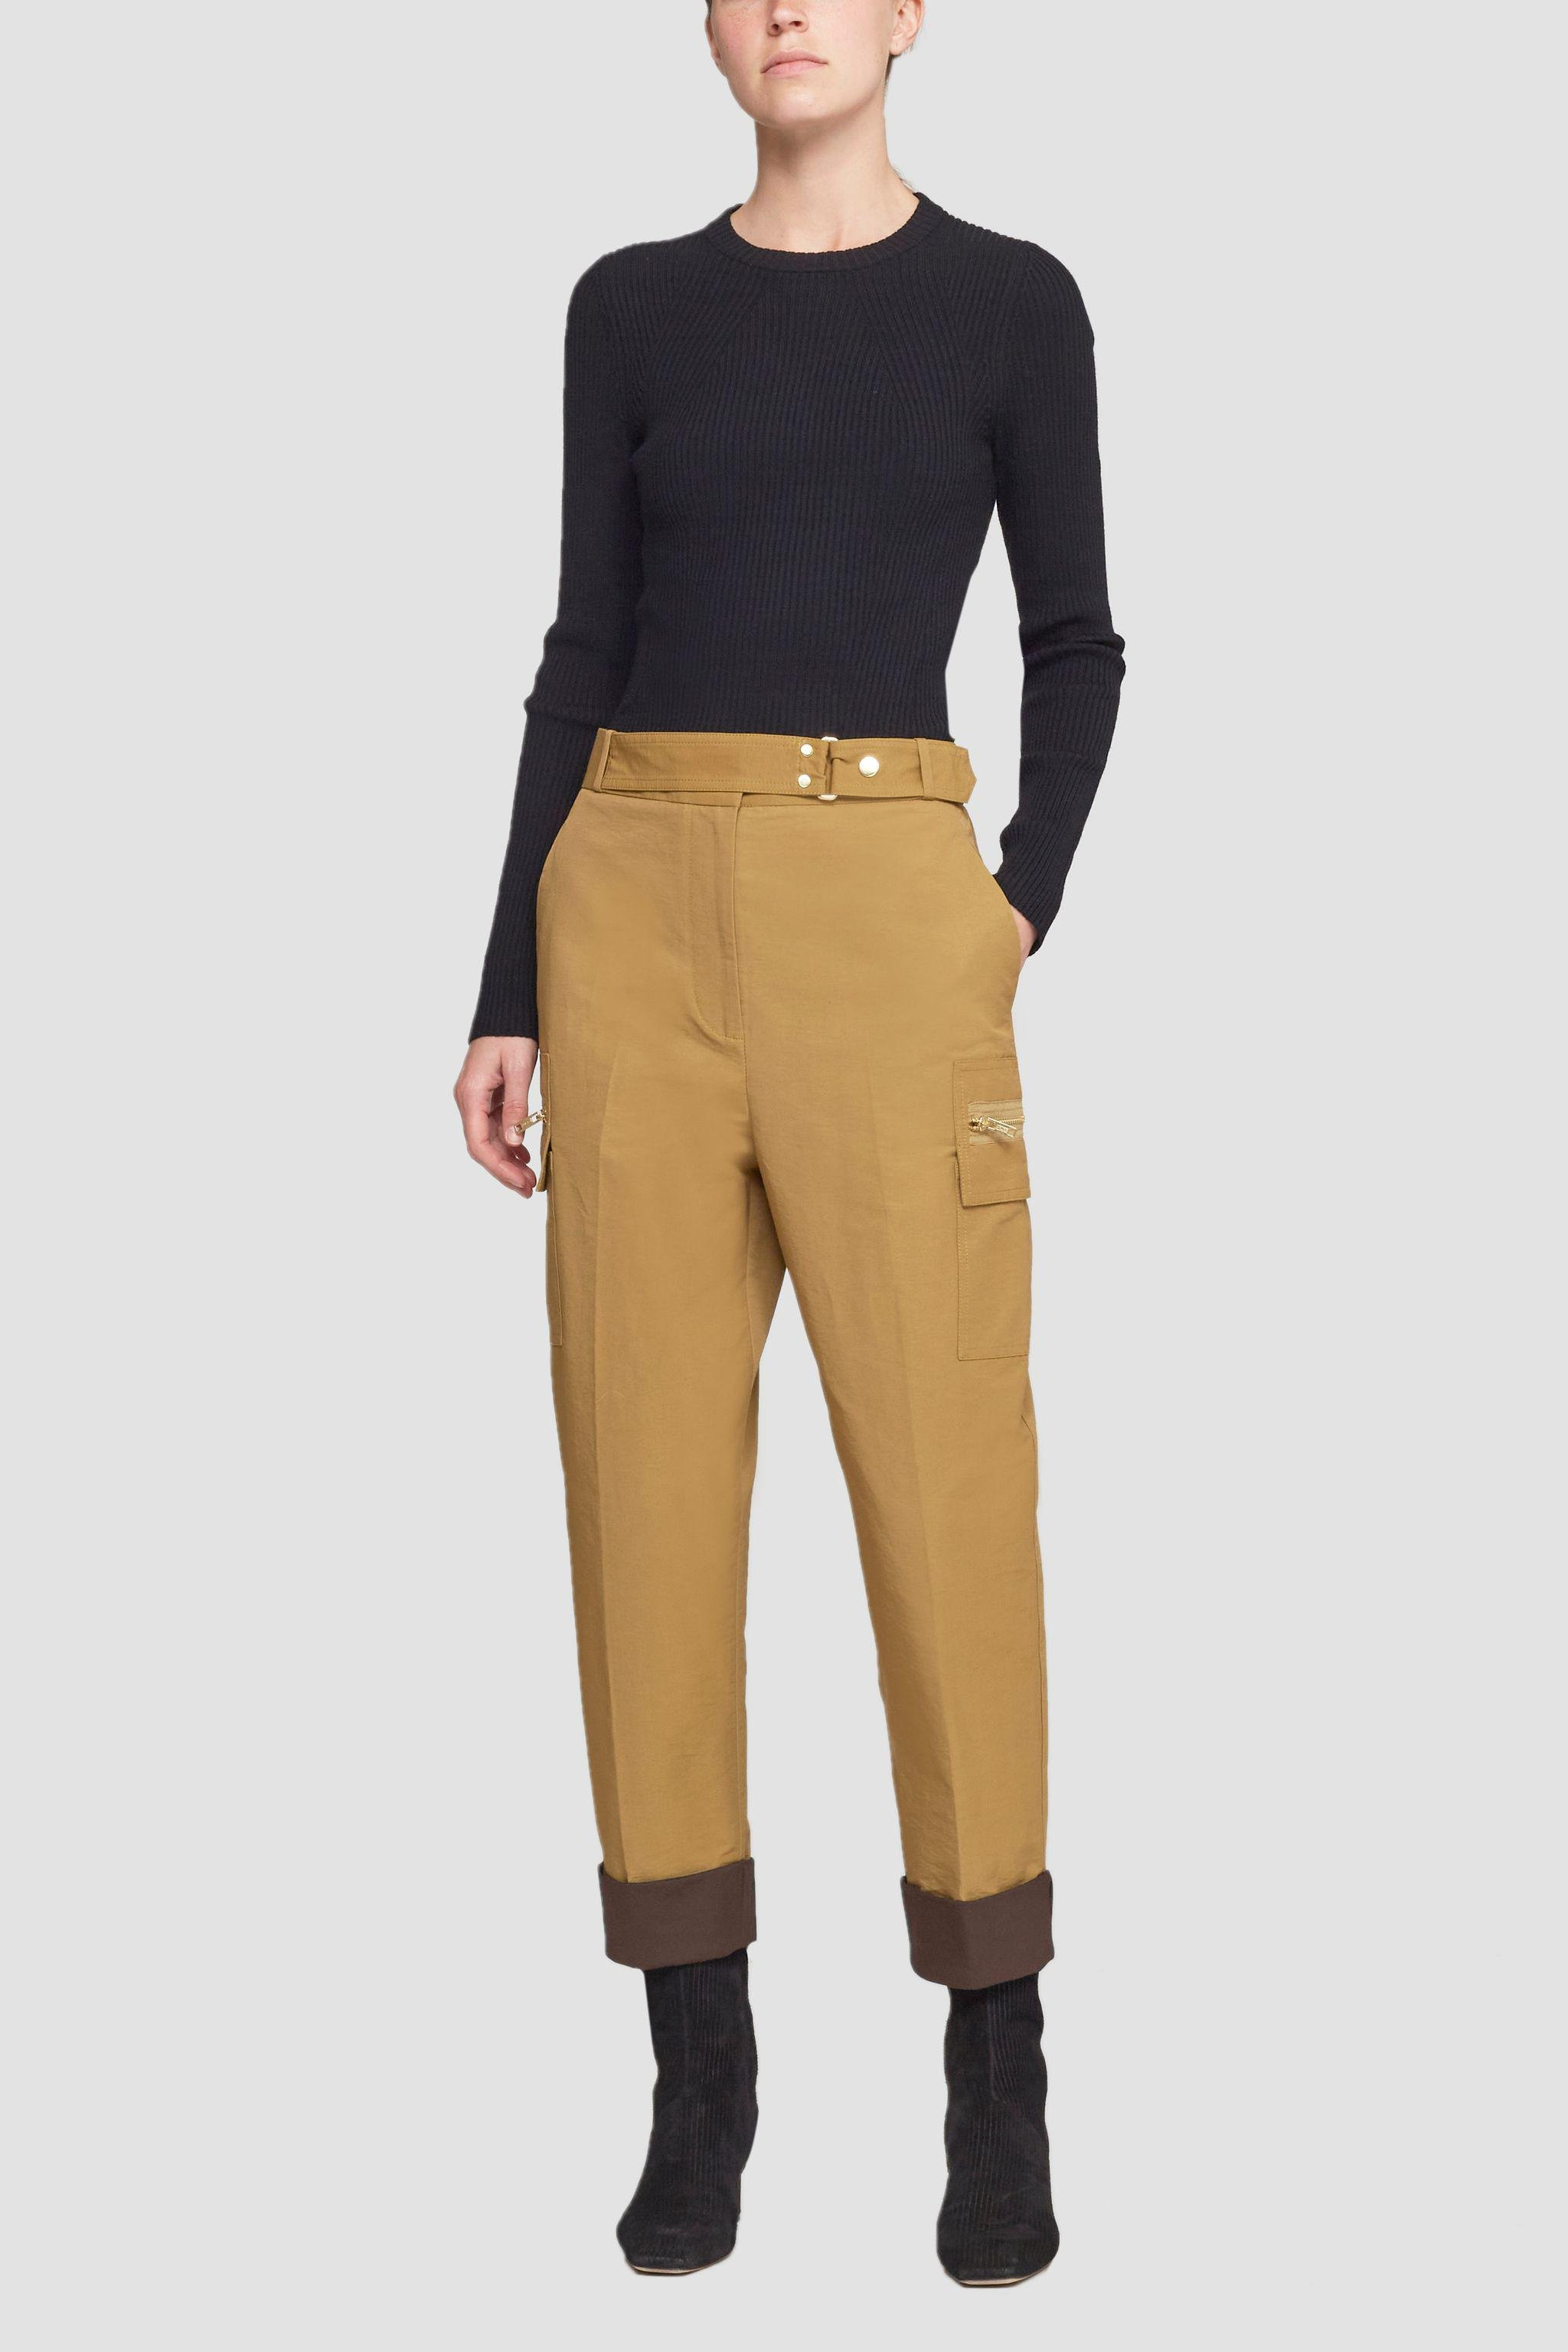 Buckled Cropped Trouser